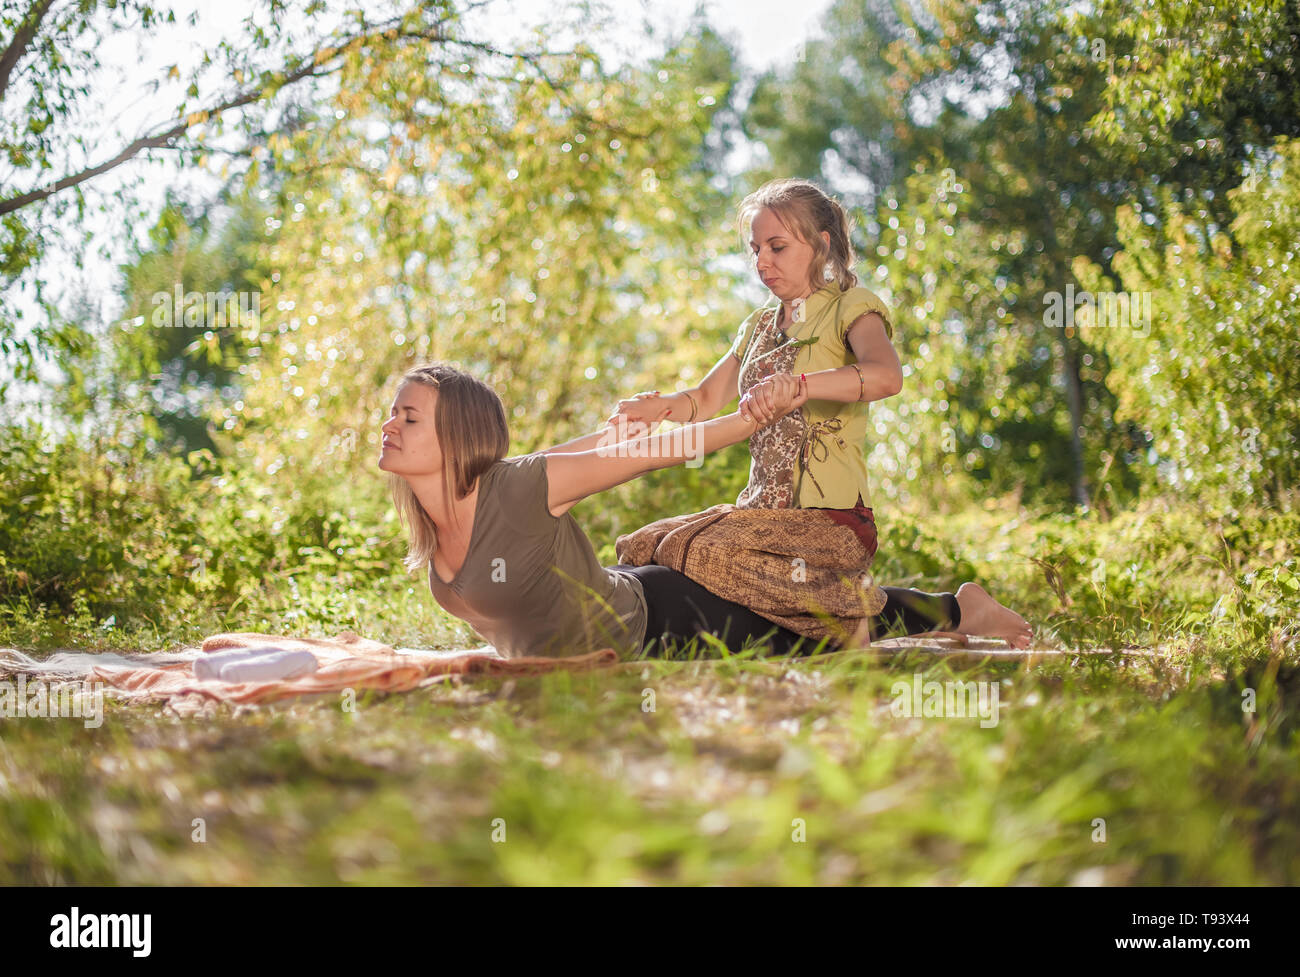 Girl masseuse thuroughly massages a girl outside. - Stock Image